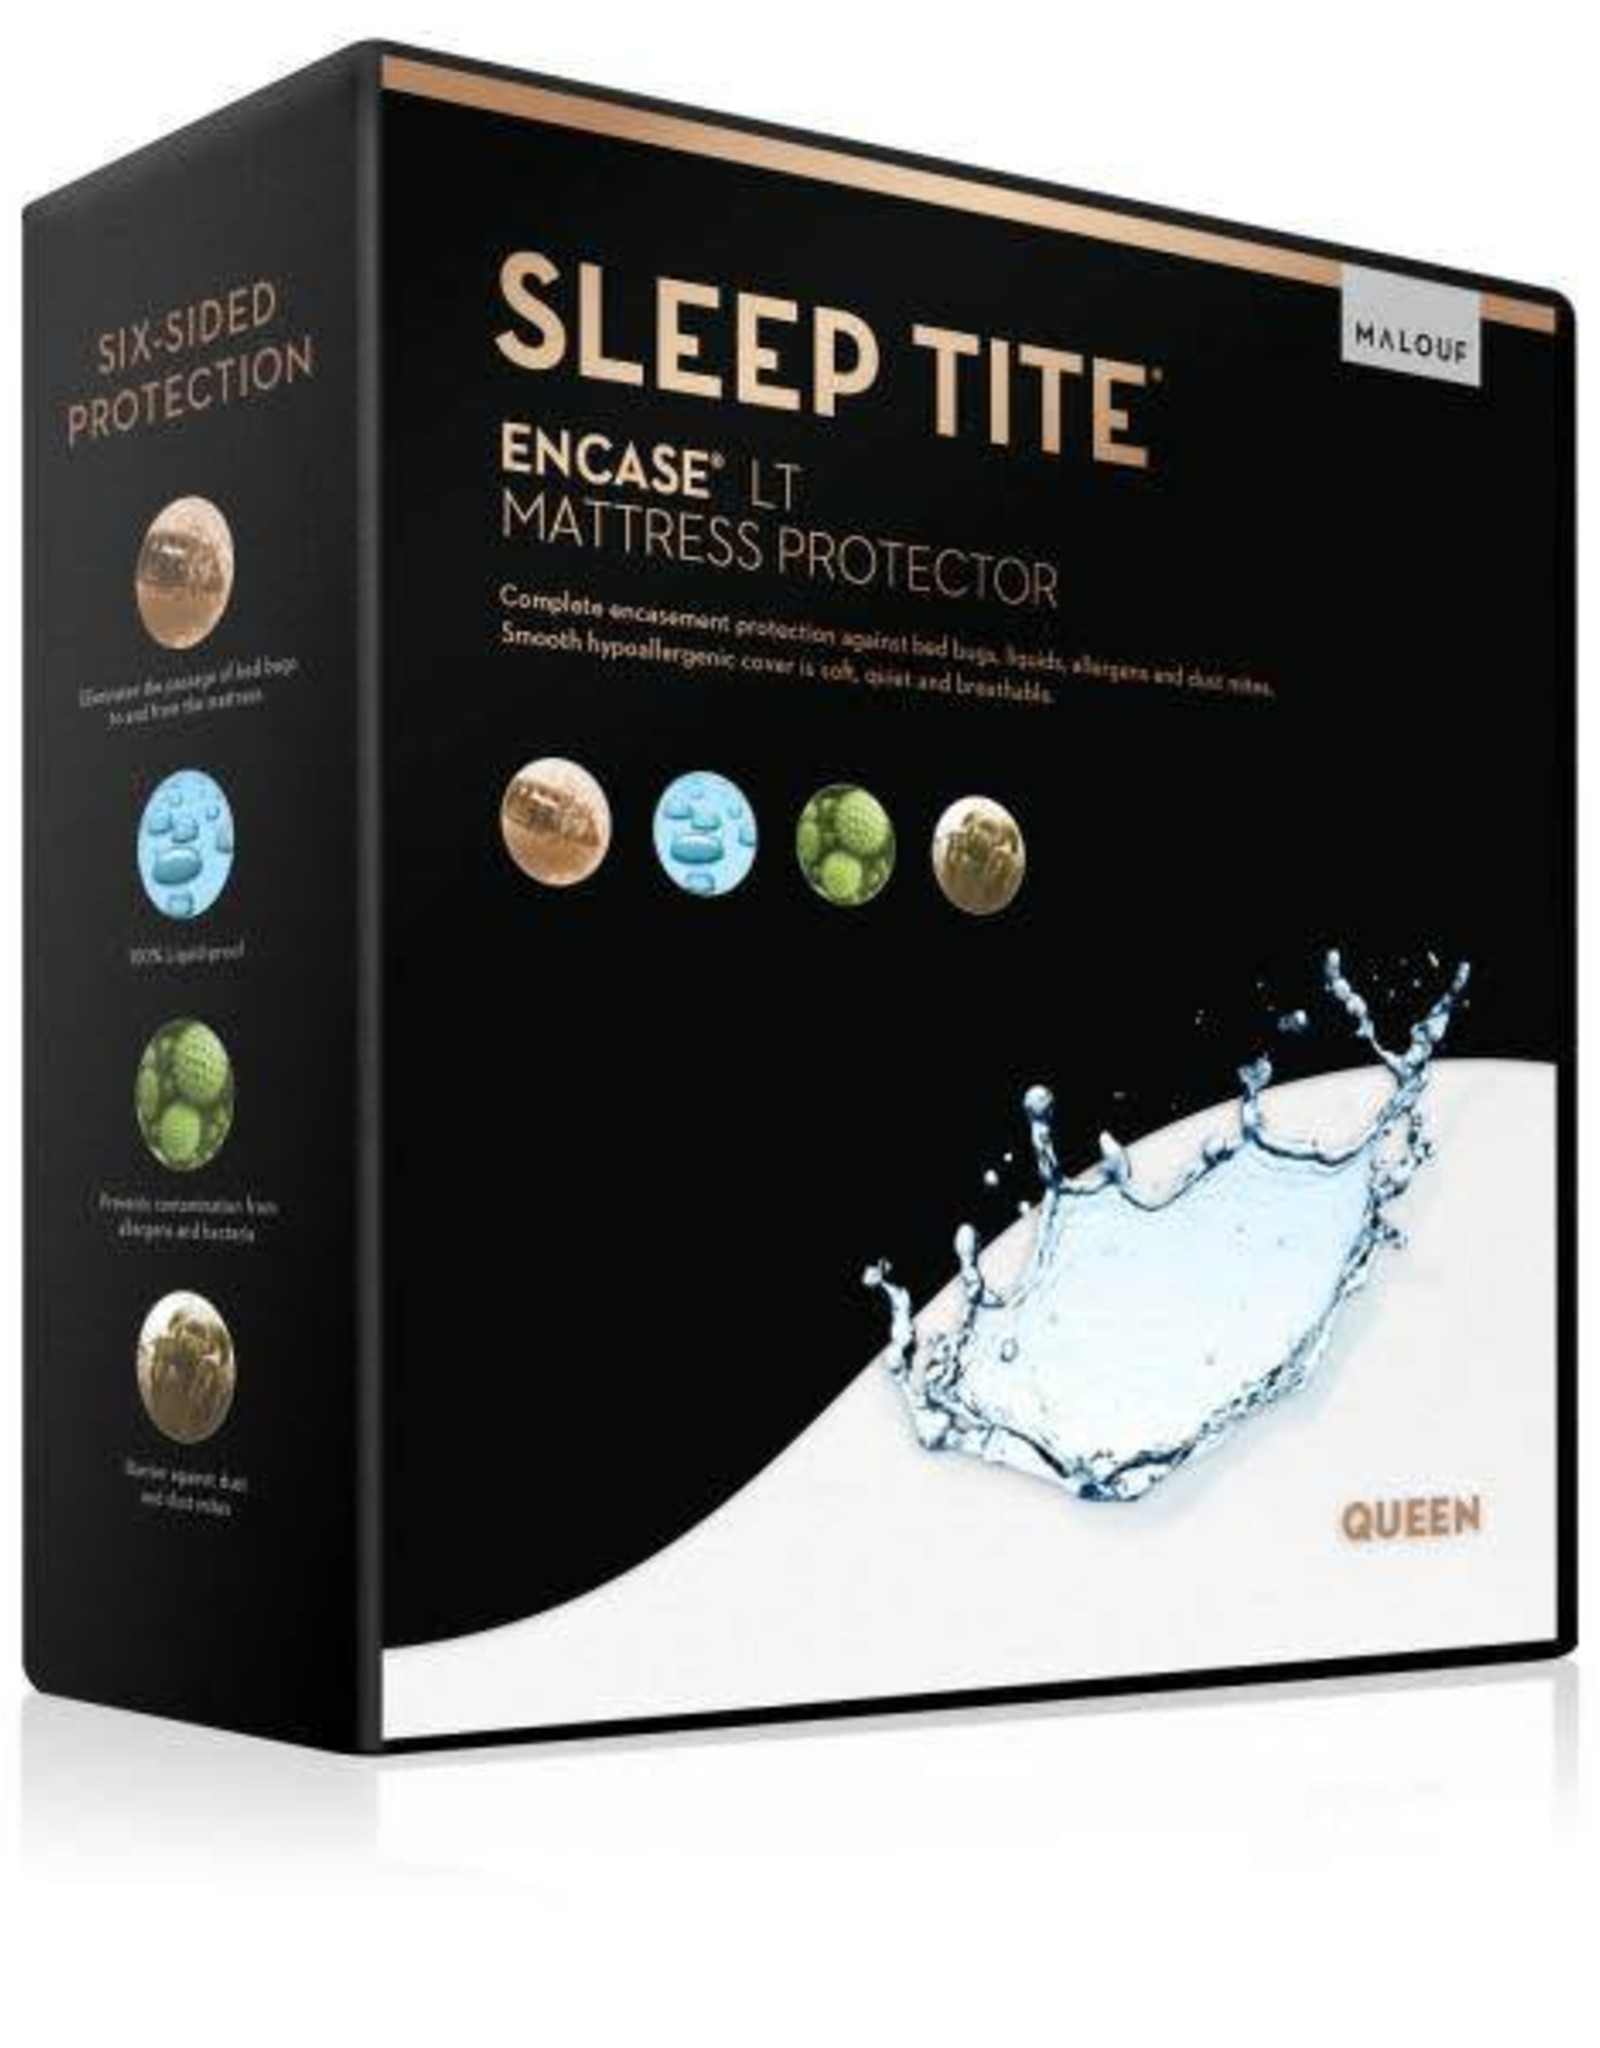 Malouf Sleep Tite Encased LT Mattress Protector - King Size